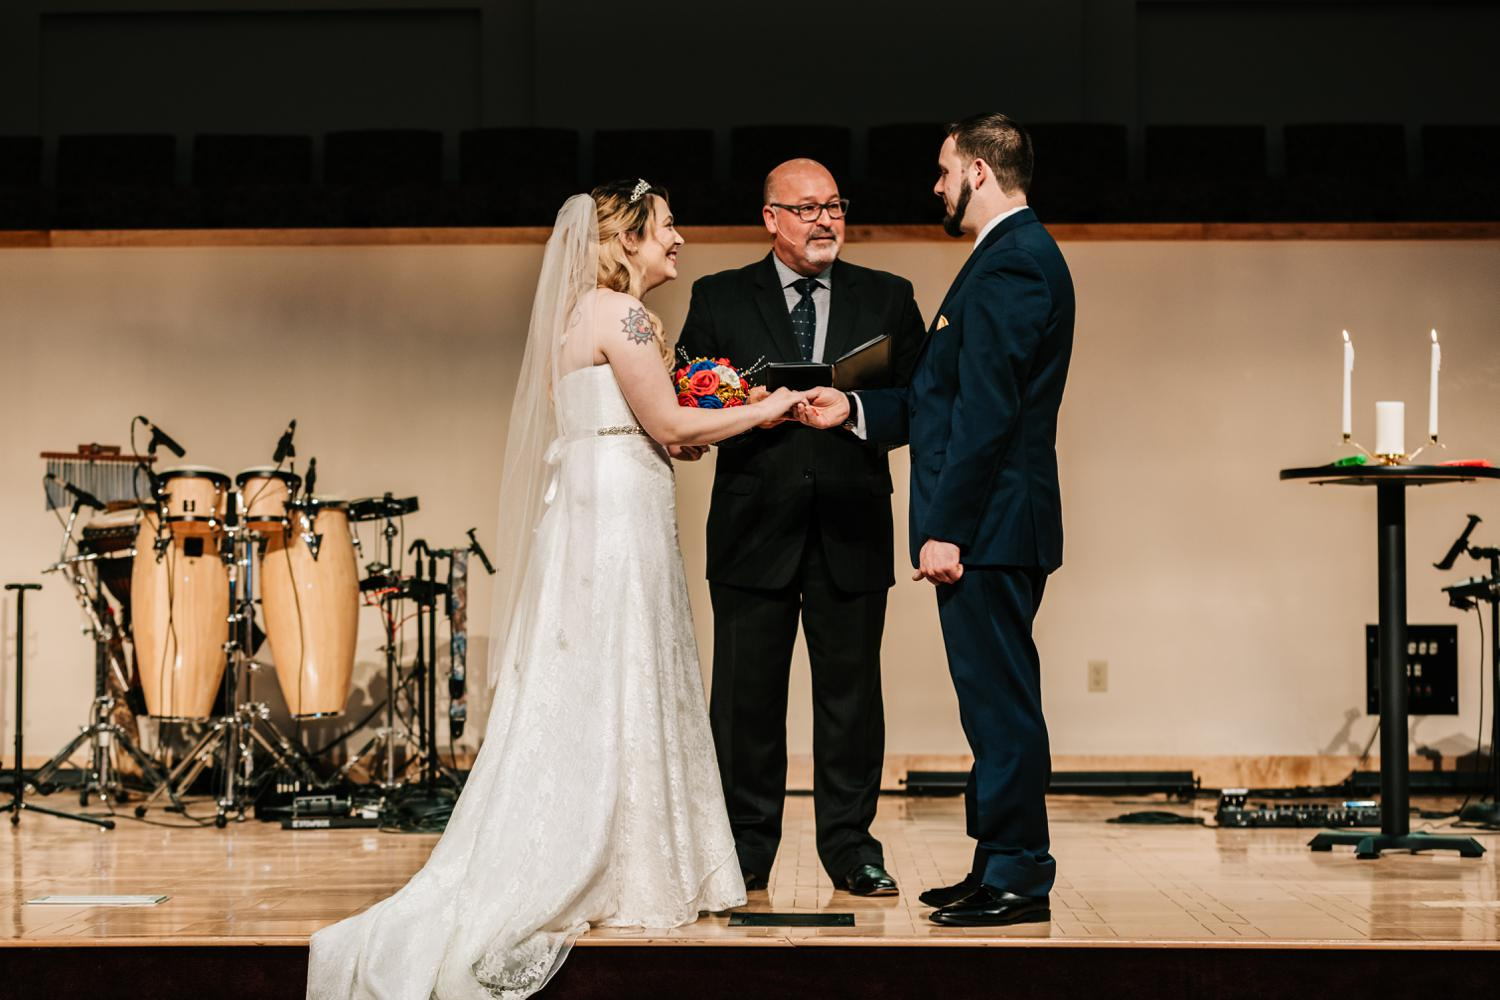 Bride and groom exchanging rings during wedding ceremony